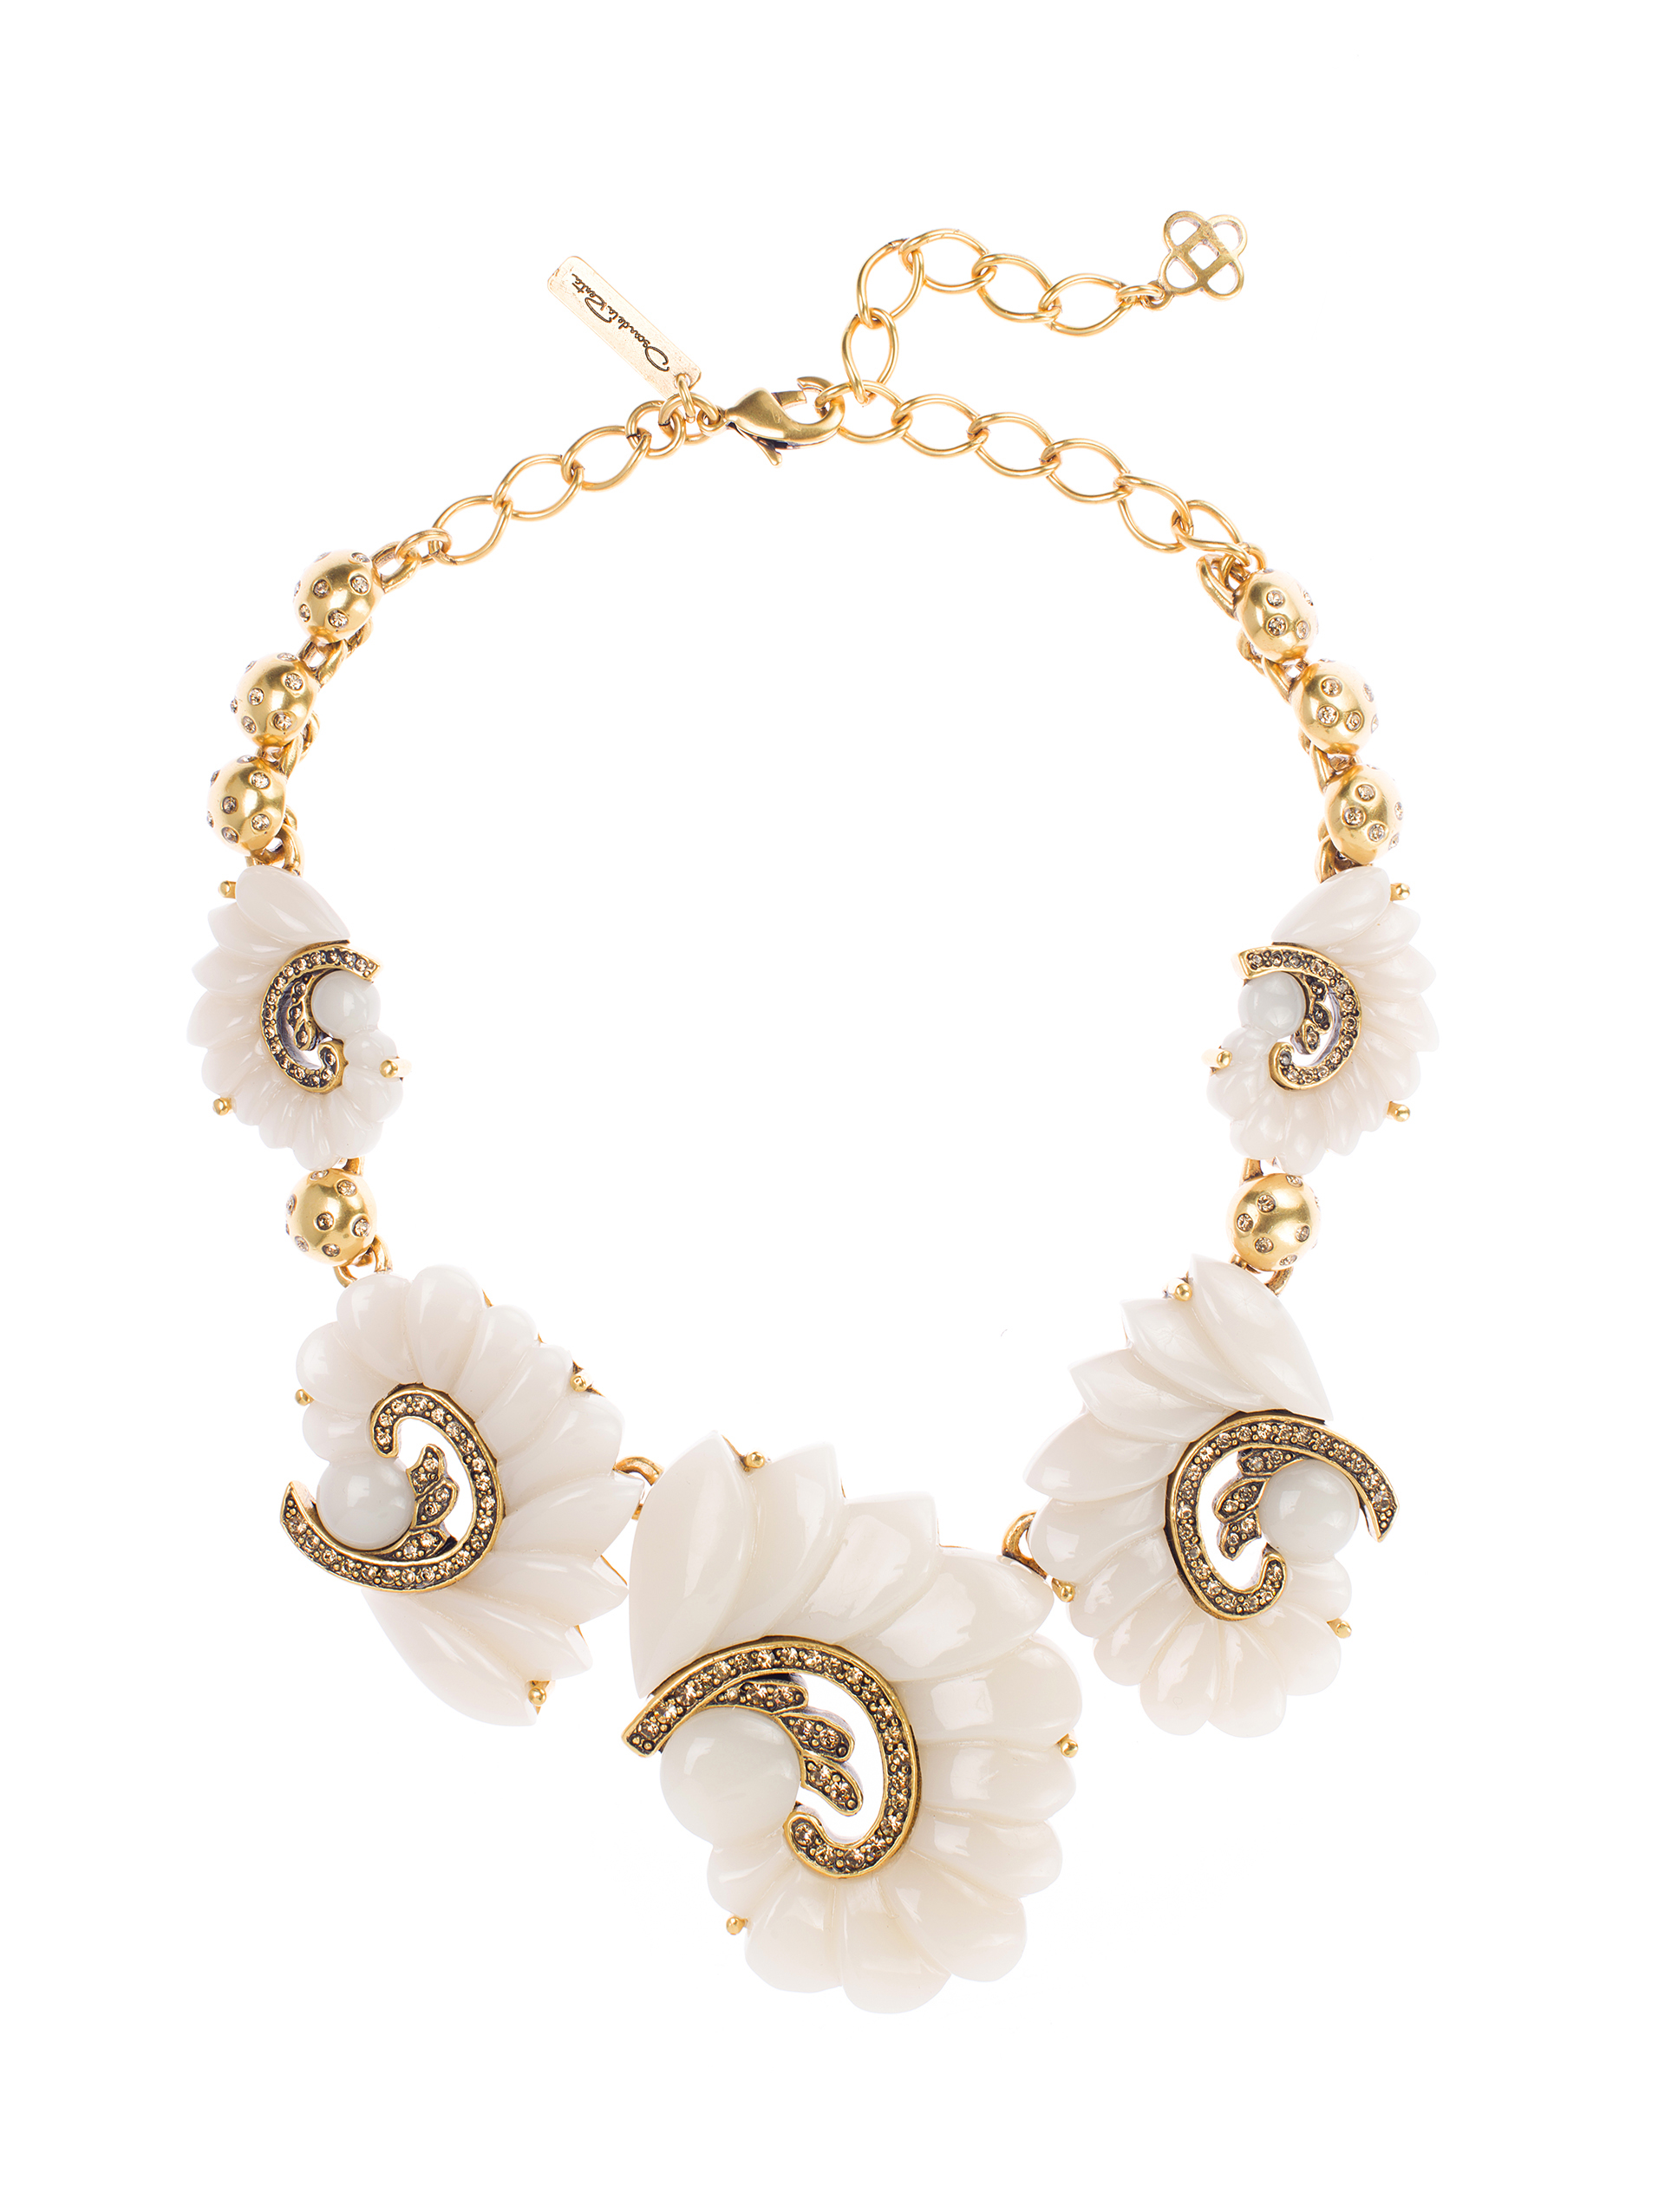 c4fdf07c7404f Lyst - Oscar de la Renta Resin Swirl Scalloped Necklace in Metallic